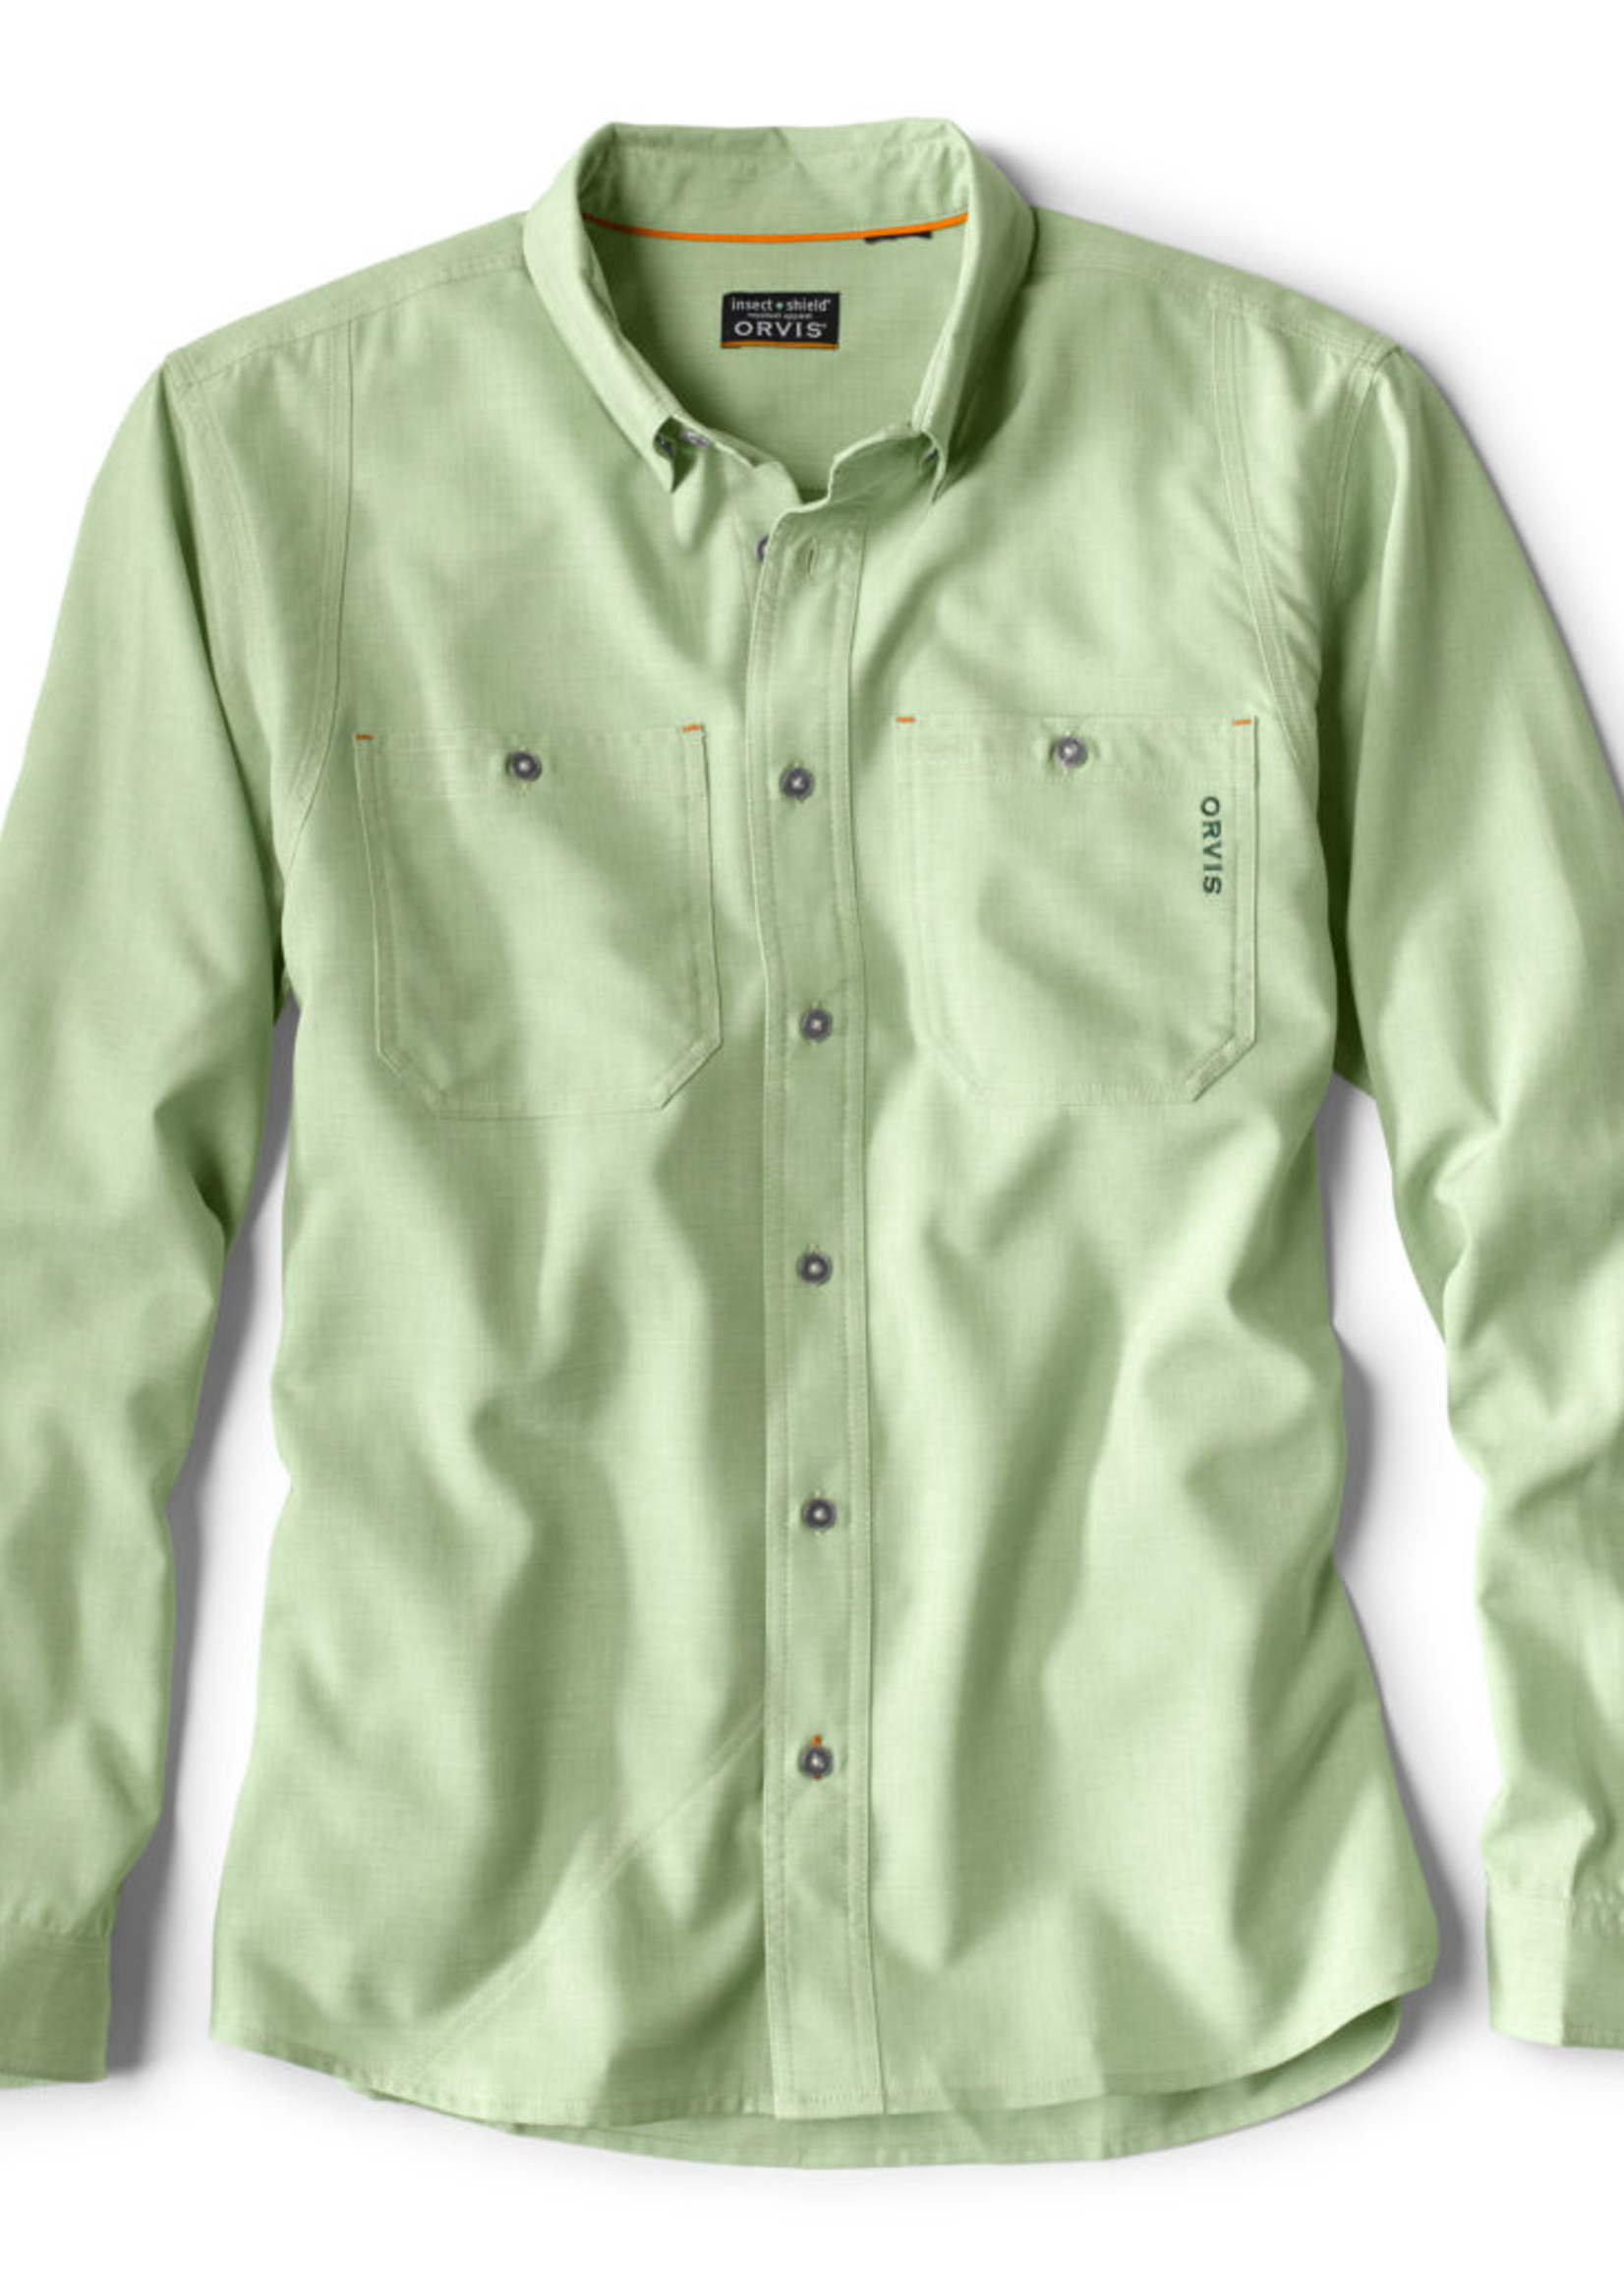 ORVIS OUTSMART TECH CHAMBRAY LS SHIRT